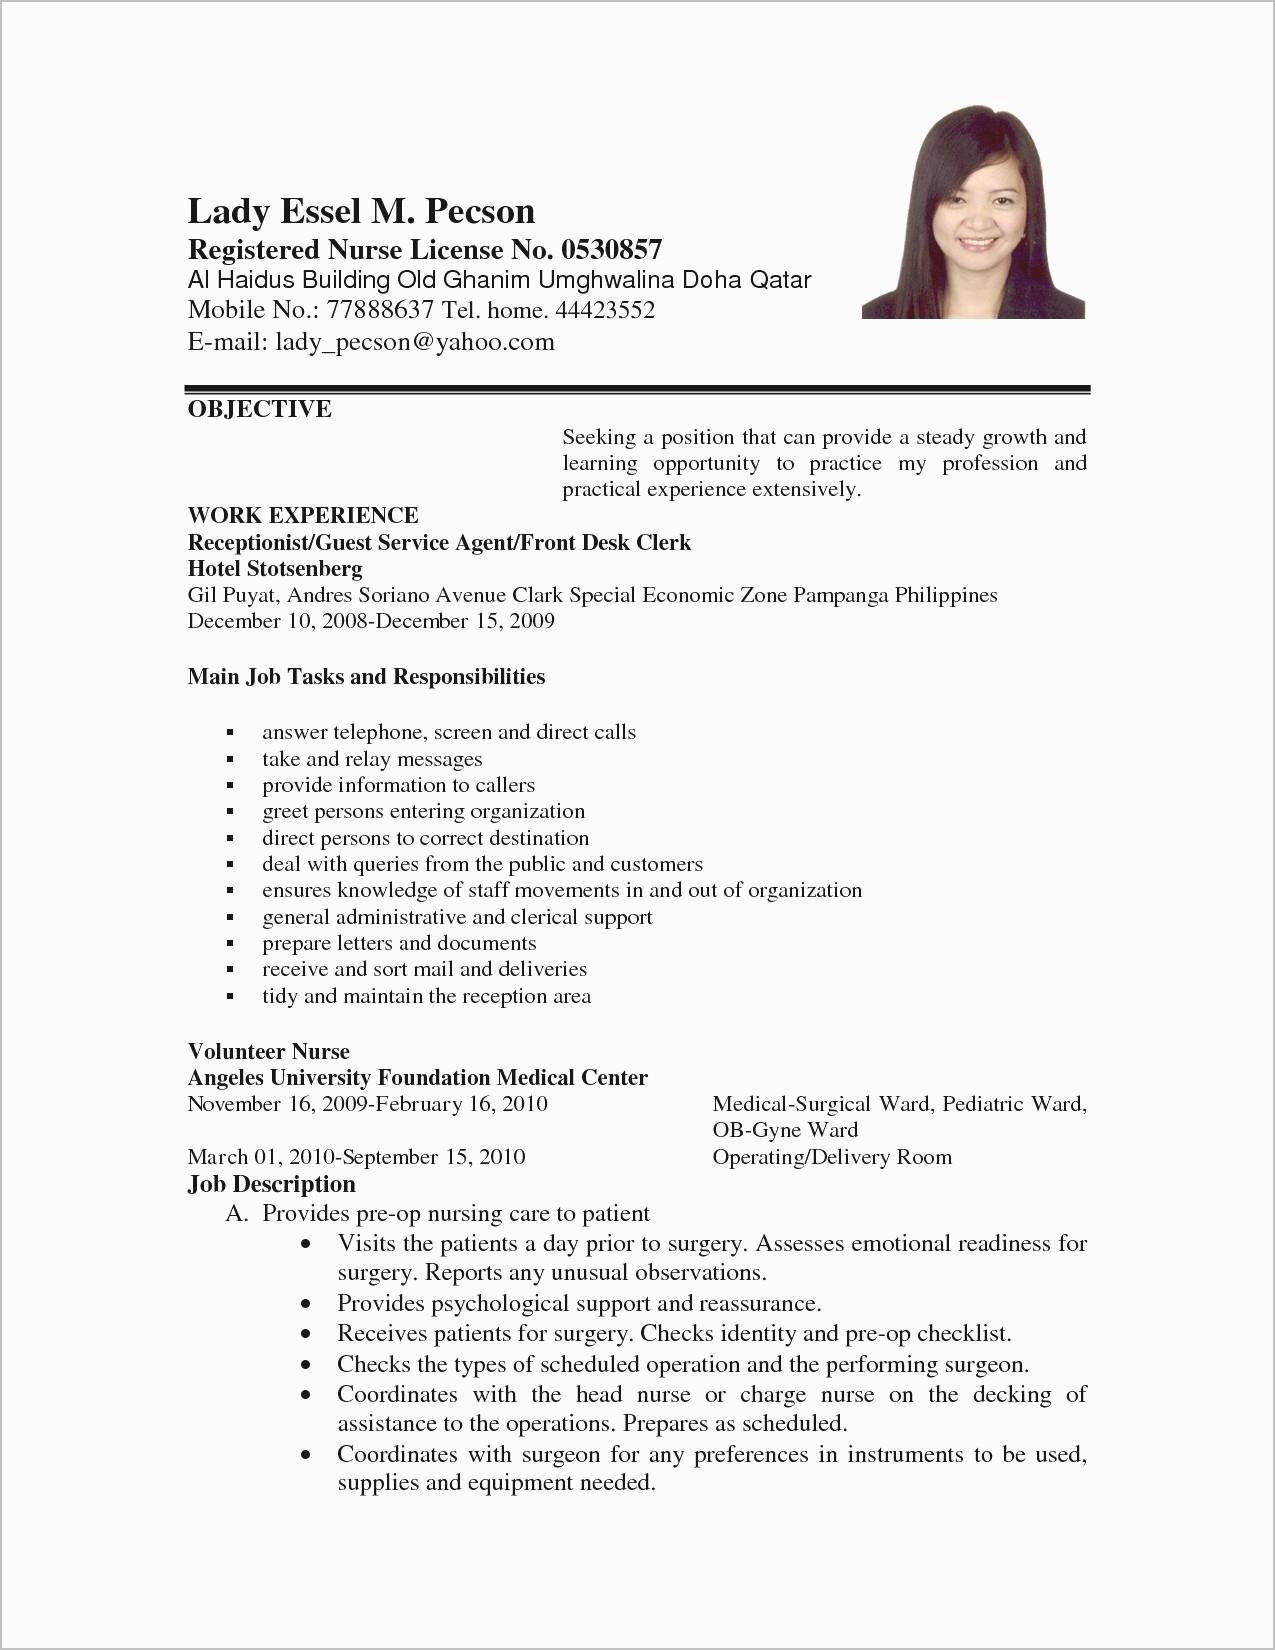 Clerical Work Resume - Disney Cover Letter Awesome Lovely Resume Pdf Beautiful Resume